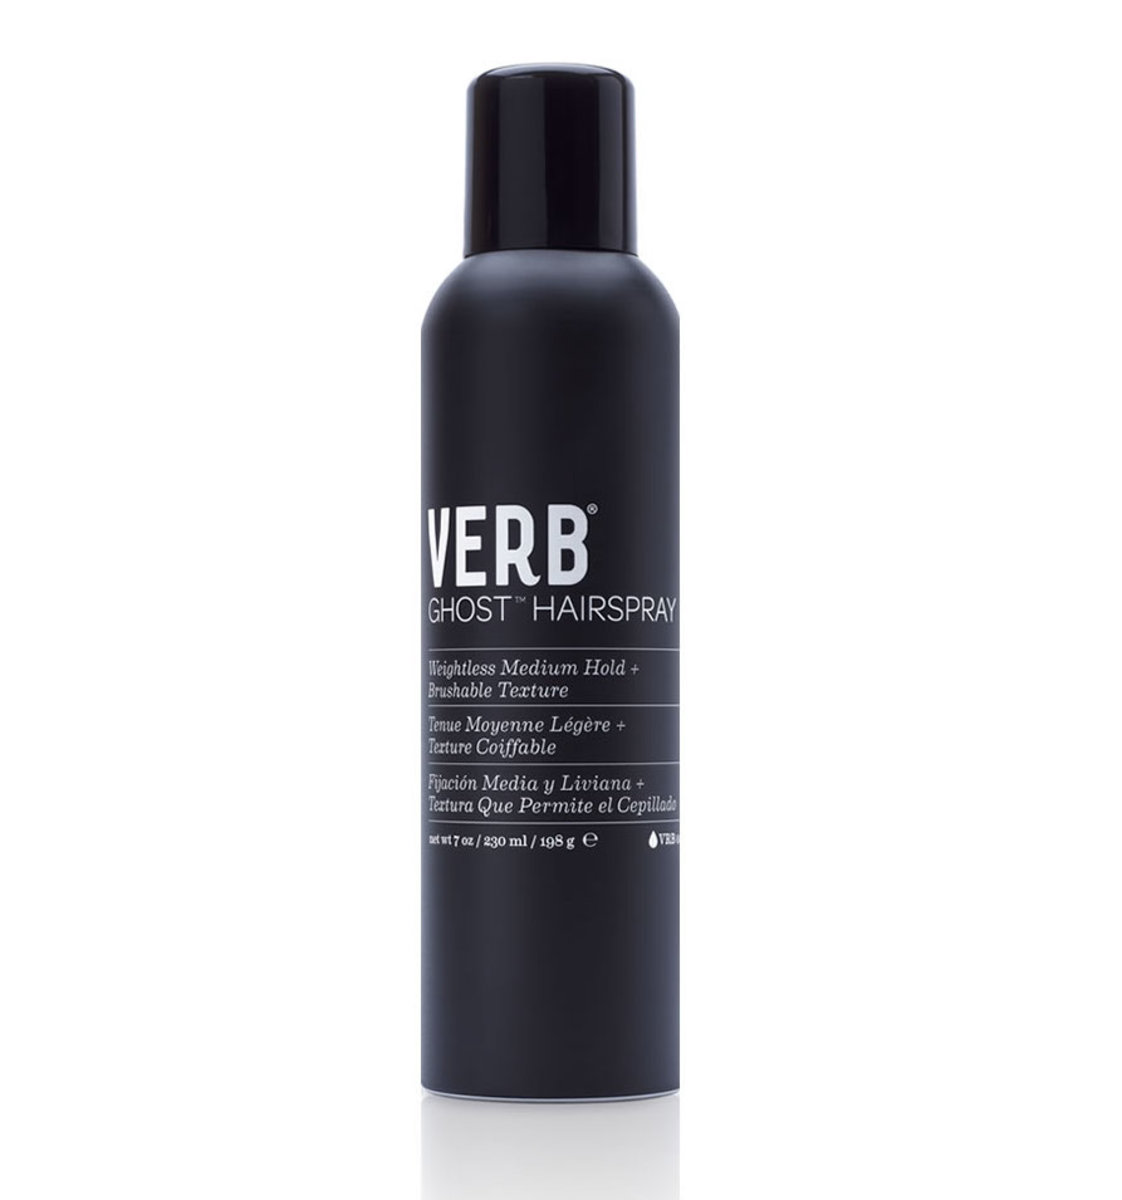 Verb Ghost Hairspray, $14, available at Sephora